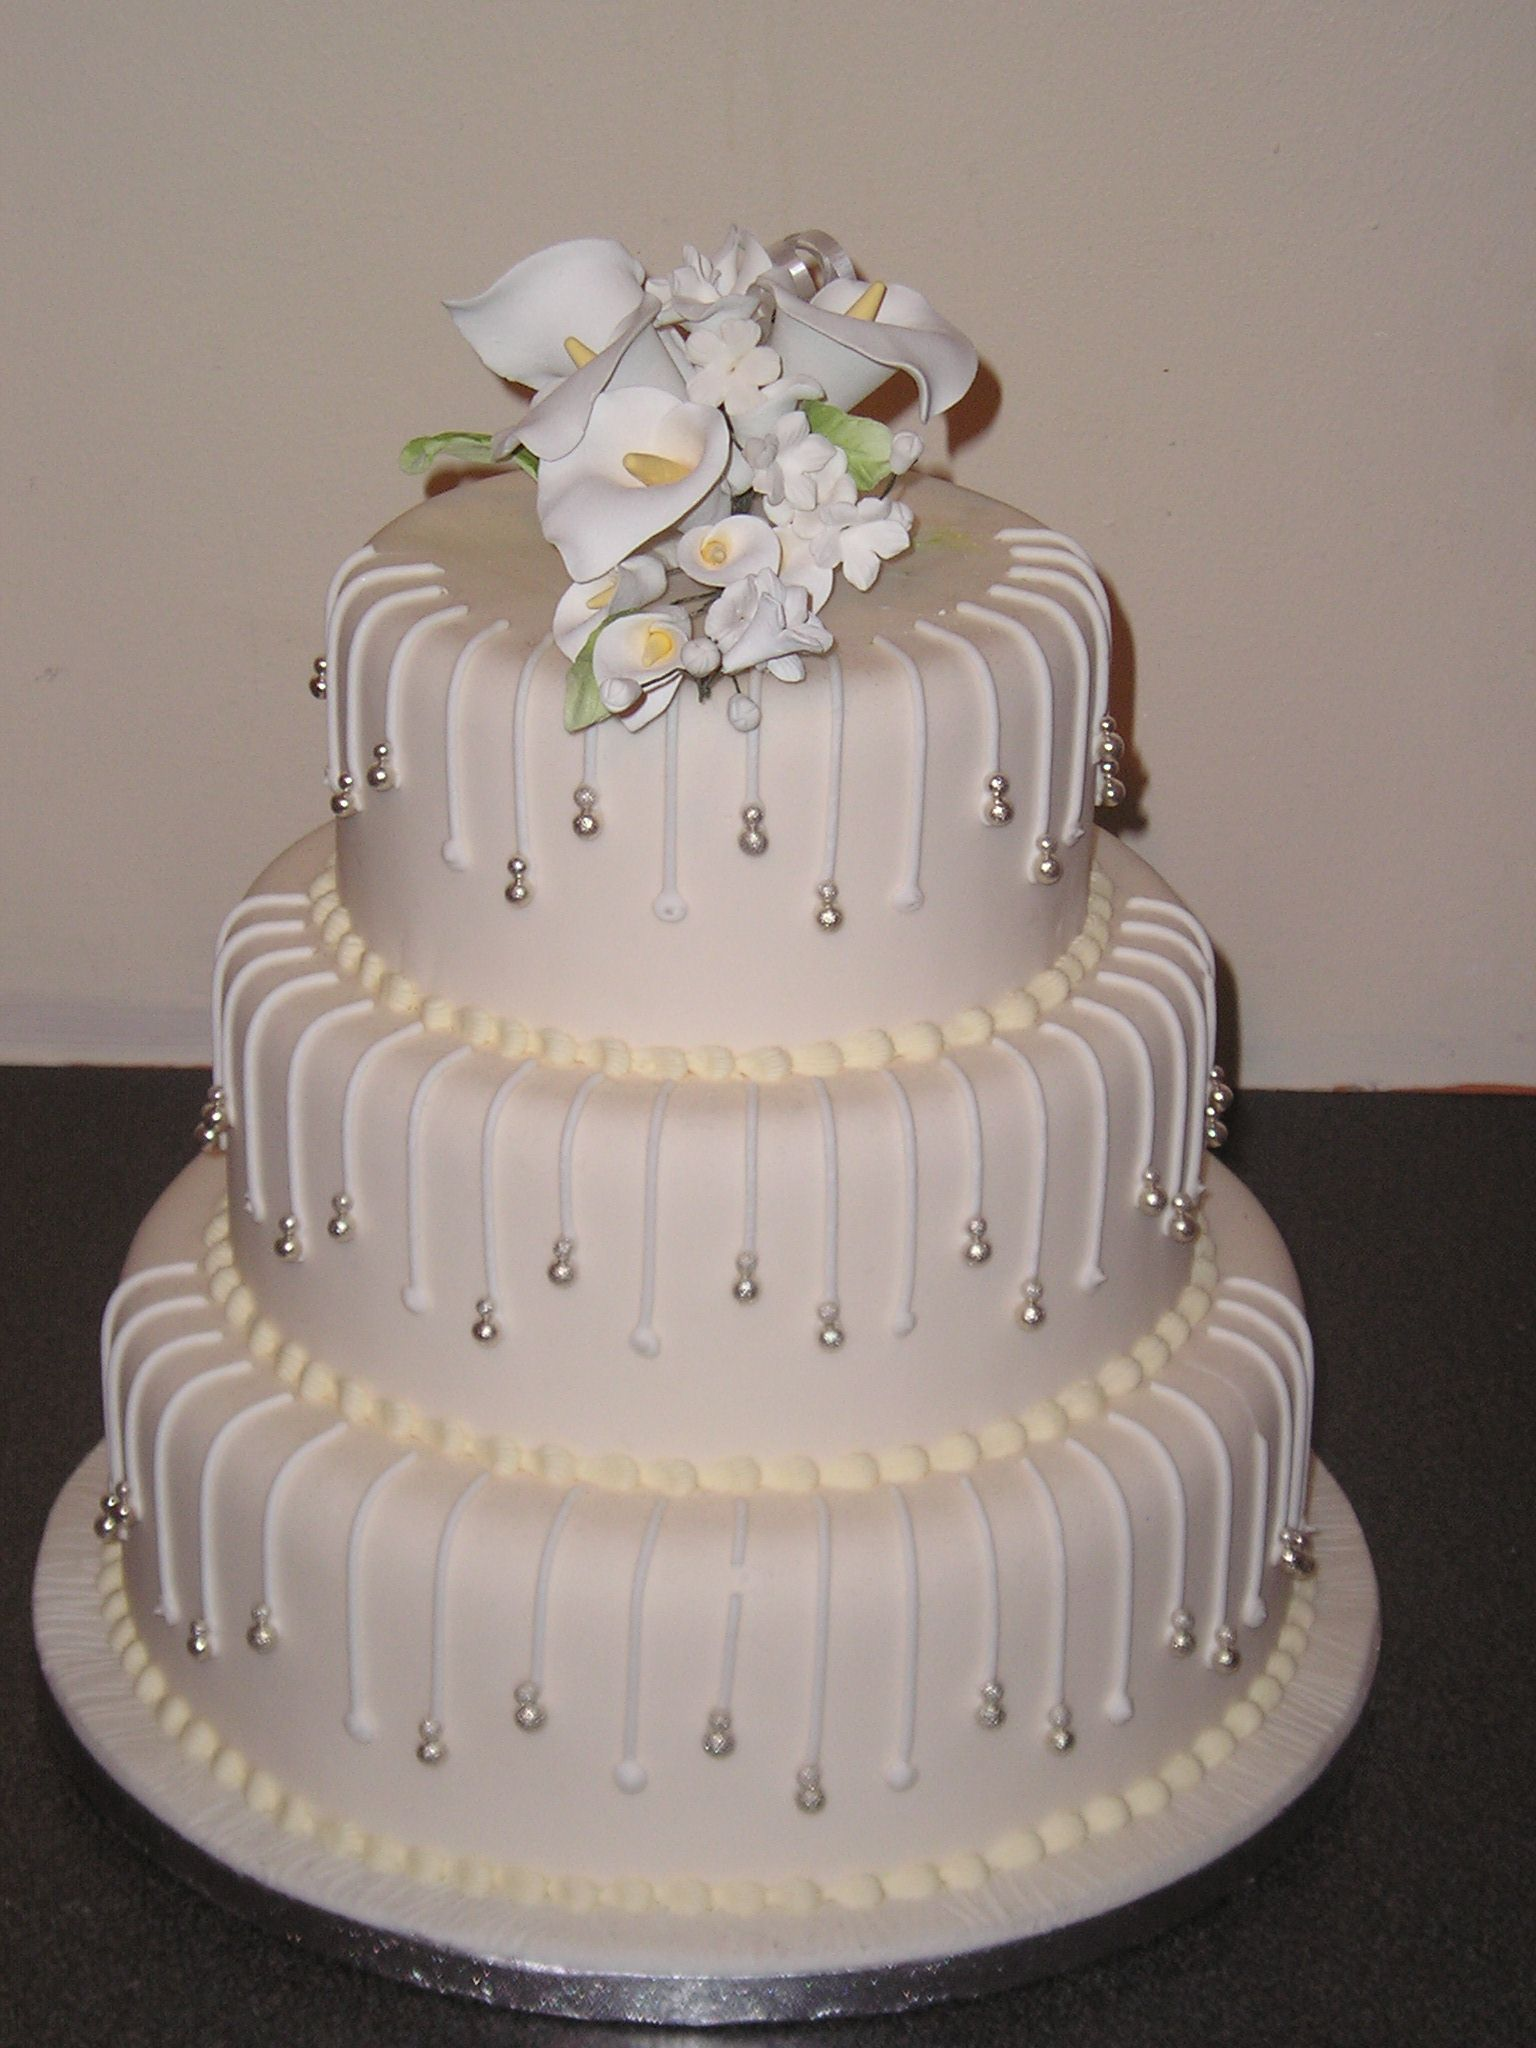 Could Be Birthday Cake In Another Color Wo The Flowers On Top - 3 Tier Wedding Cakes